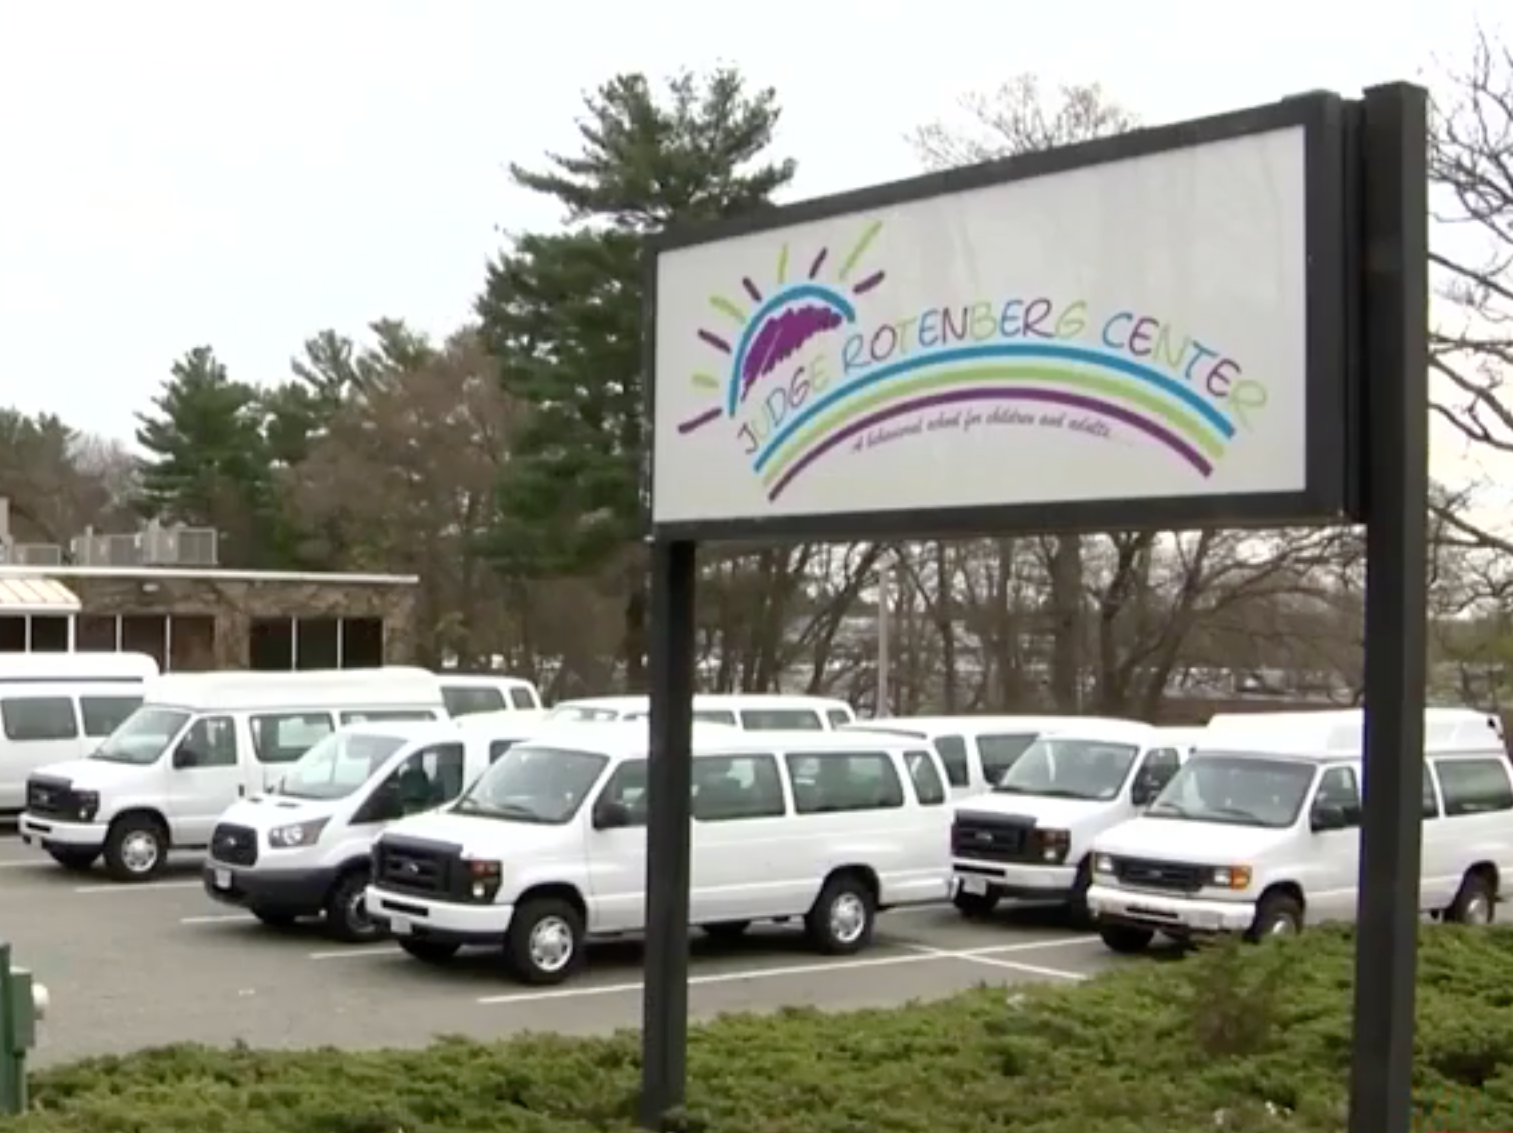 Massachusetts school can continue using electric shocks on special needs students, judge rules